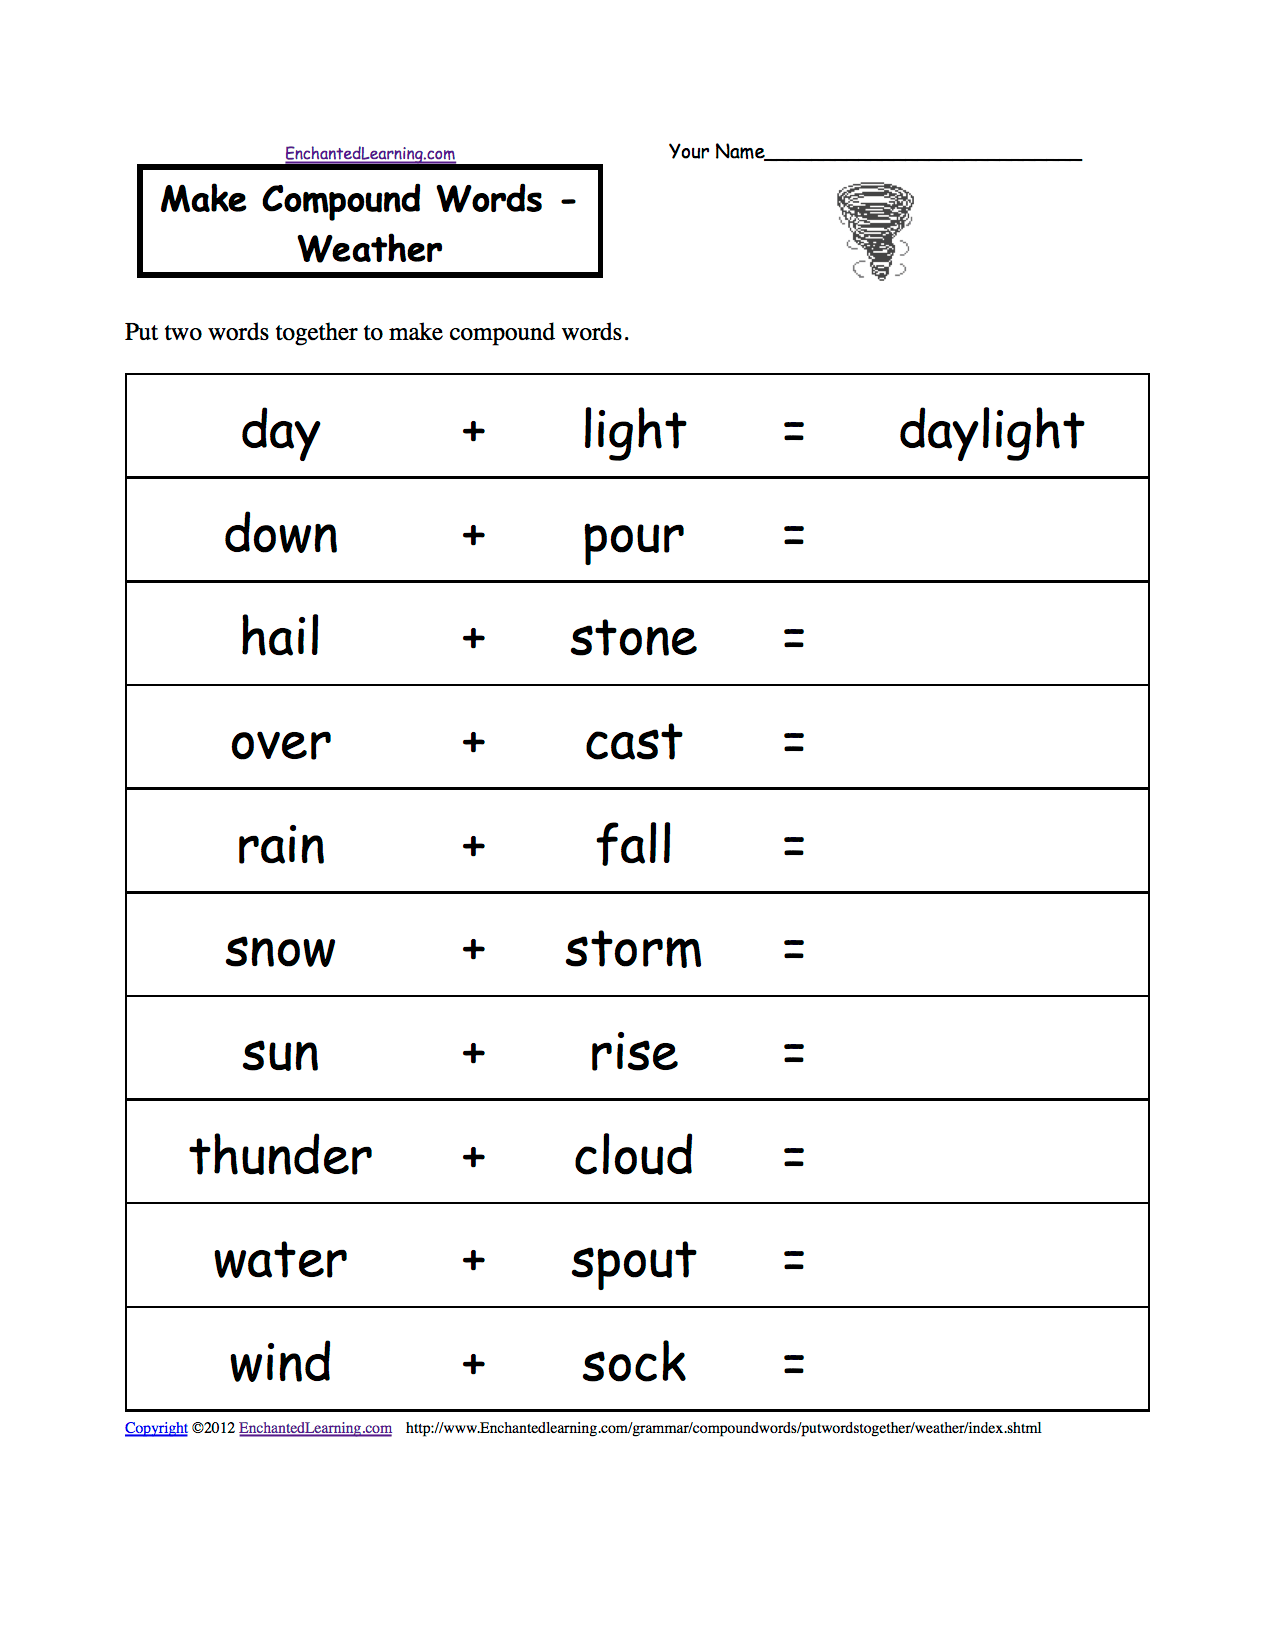 Weather Related Spelling Activities And Worksheets At Enchantedlearning